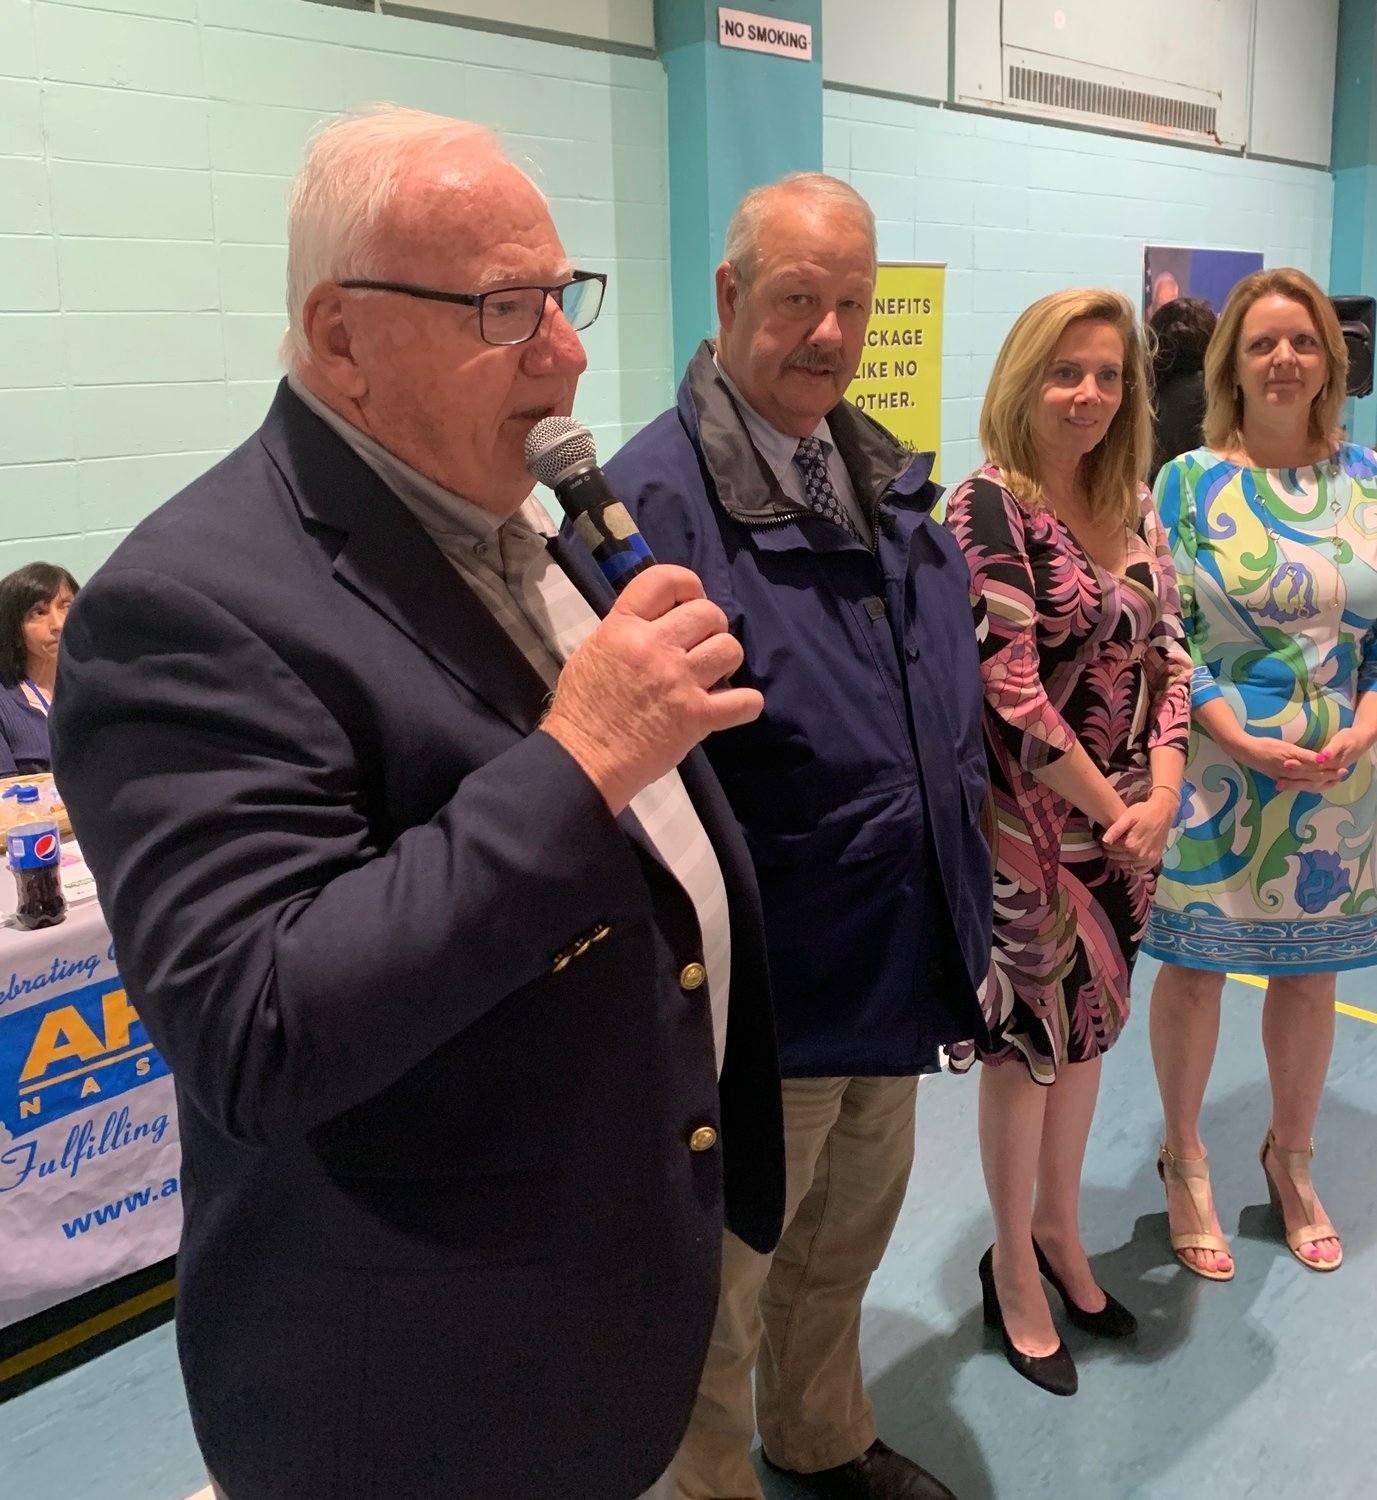 Senator John Brooks, left, hosted the annual Job and Career Fair at the Freeport Recreation Center with the support of Freeport's Mayor Robert Kennedy, second from left, and is attended by a number of other elected officials like Laura Gillen, Town of Hempstead Supervisor, third from left, and Nassau County Legislator Debra Mulé, right.